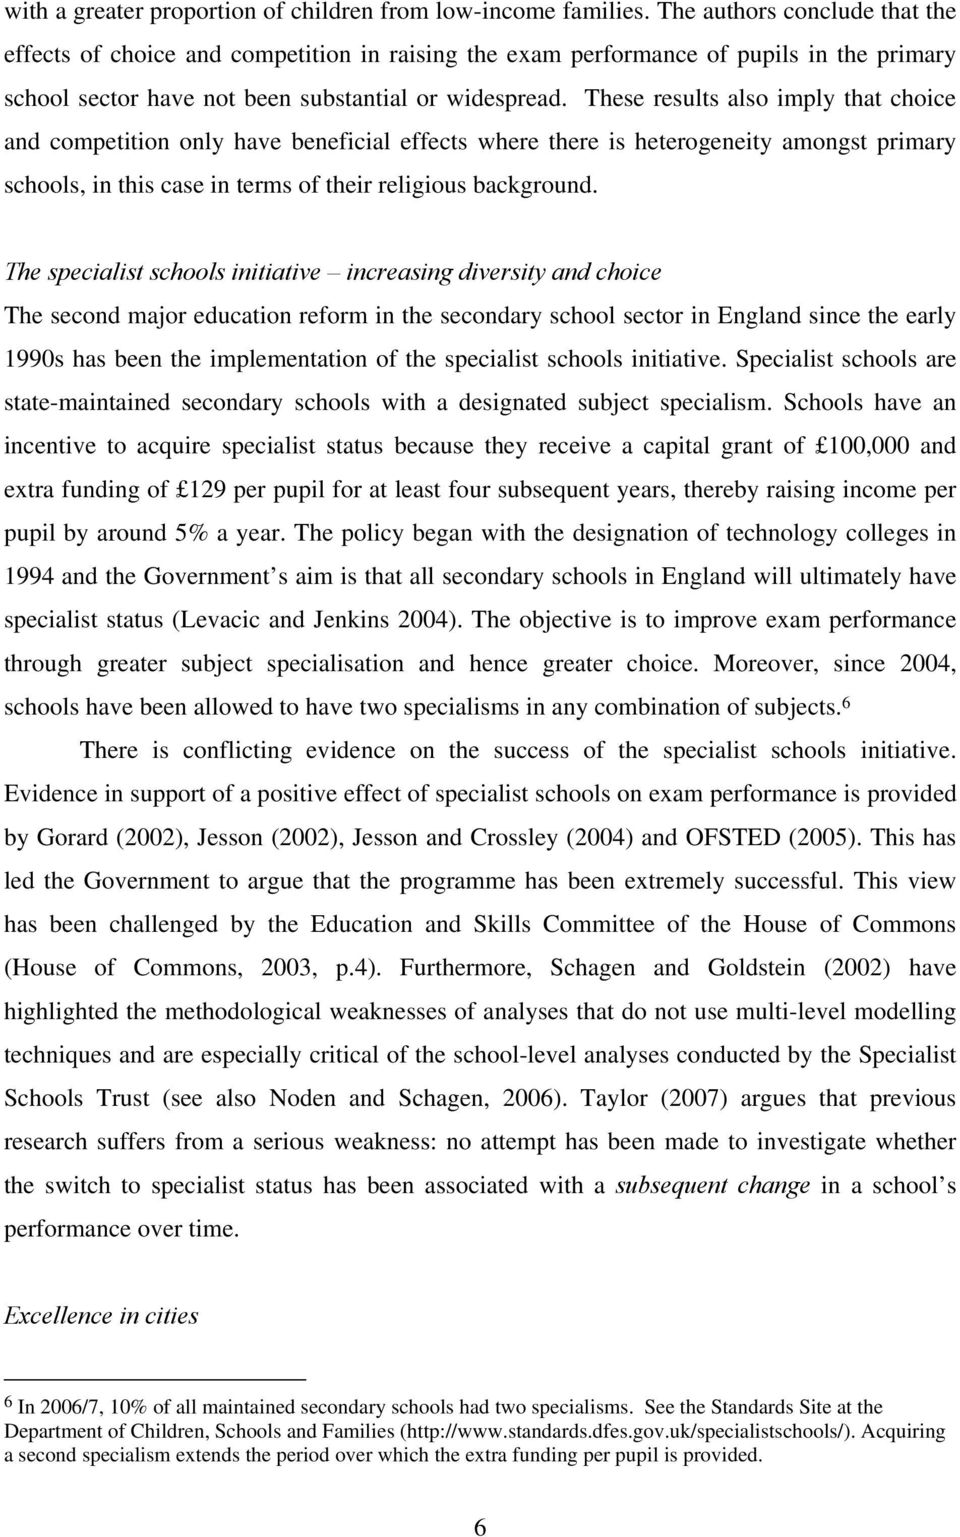 These results also imply that choice and competition only have beneficial effects where there is heterogeneity amongst primary schools, in this case in terms of their religious background.